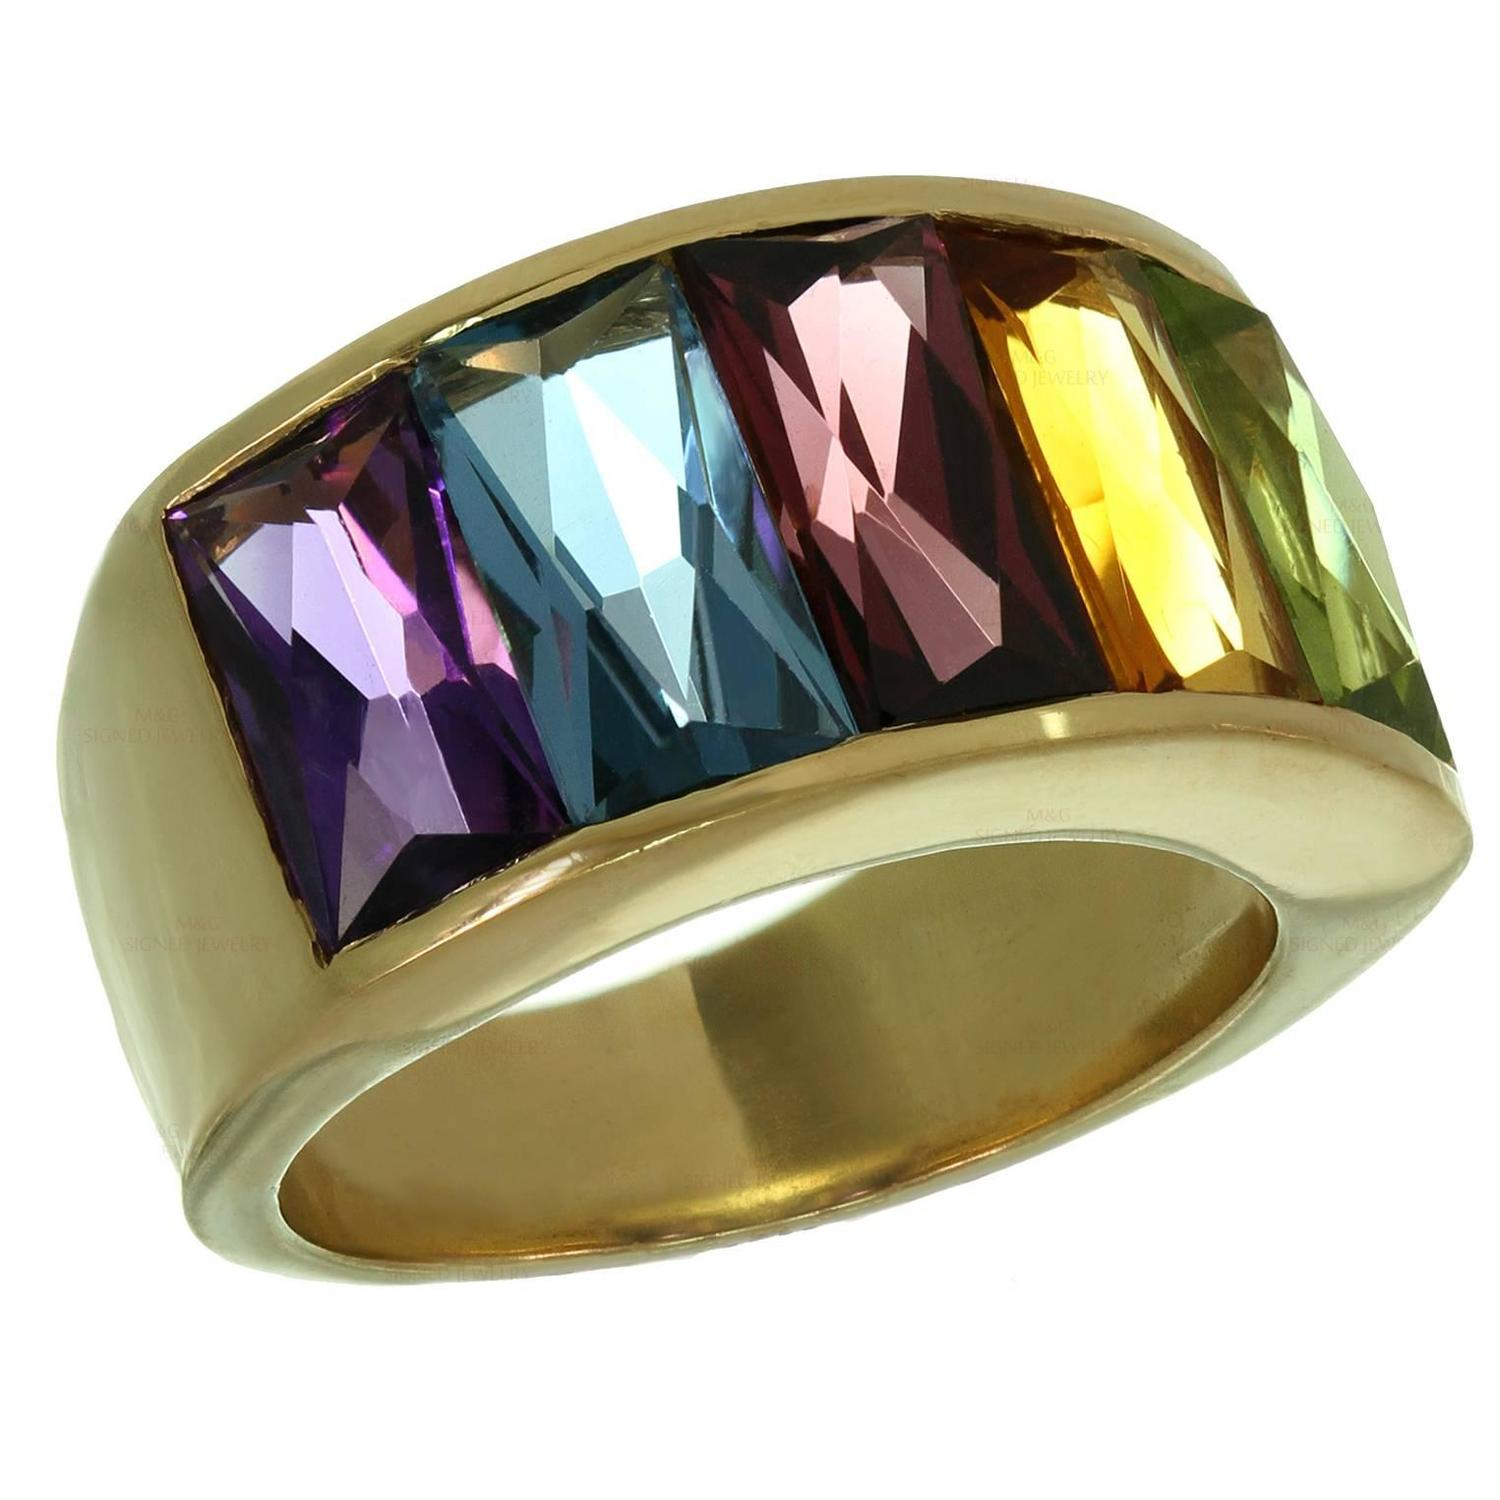 rings engagement rainbow band titanium amazon size womens acupress wedding com dp steel men colorful